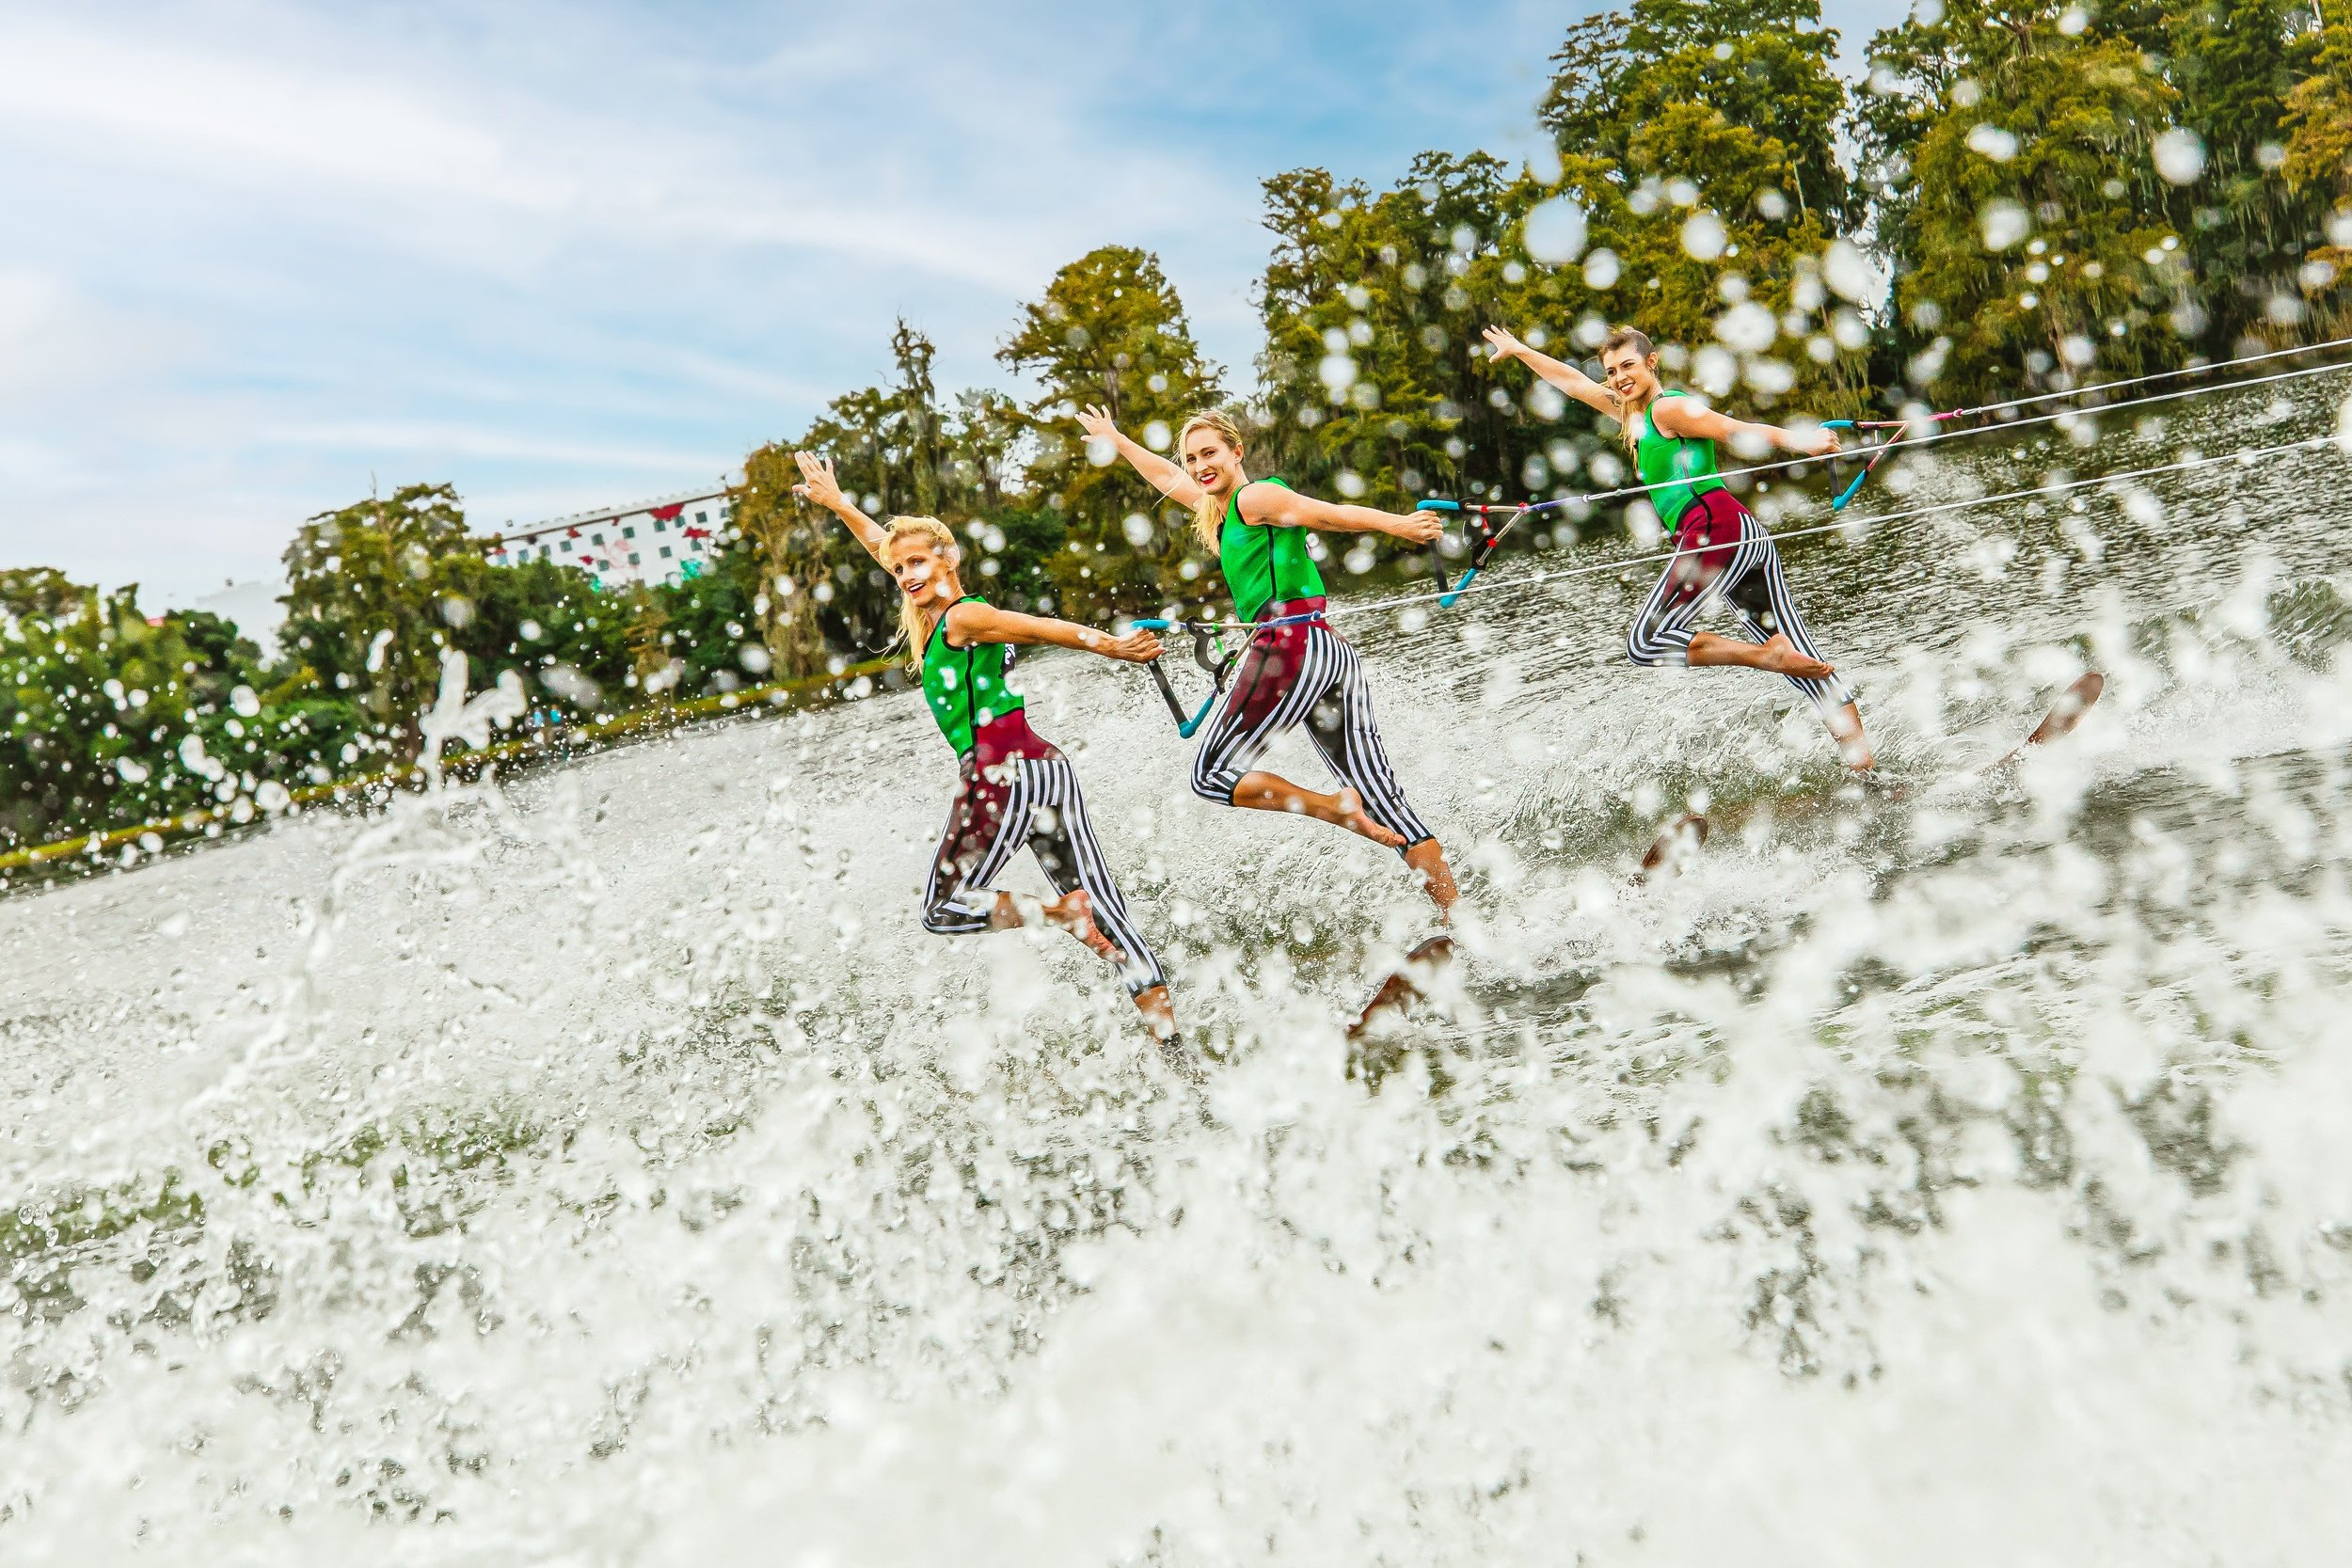 Pirate-themed waterski show at Legoland Florida